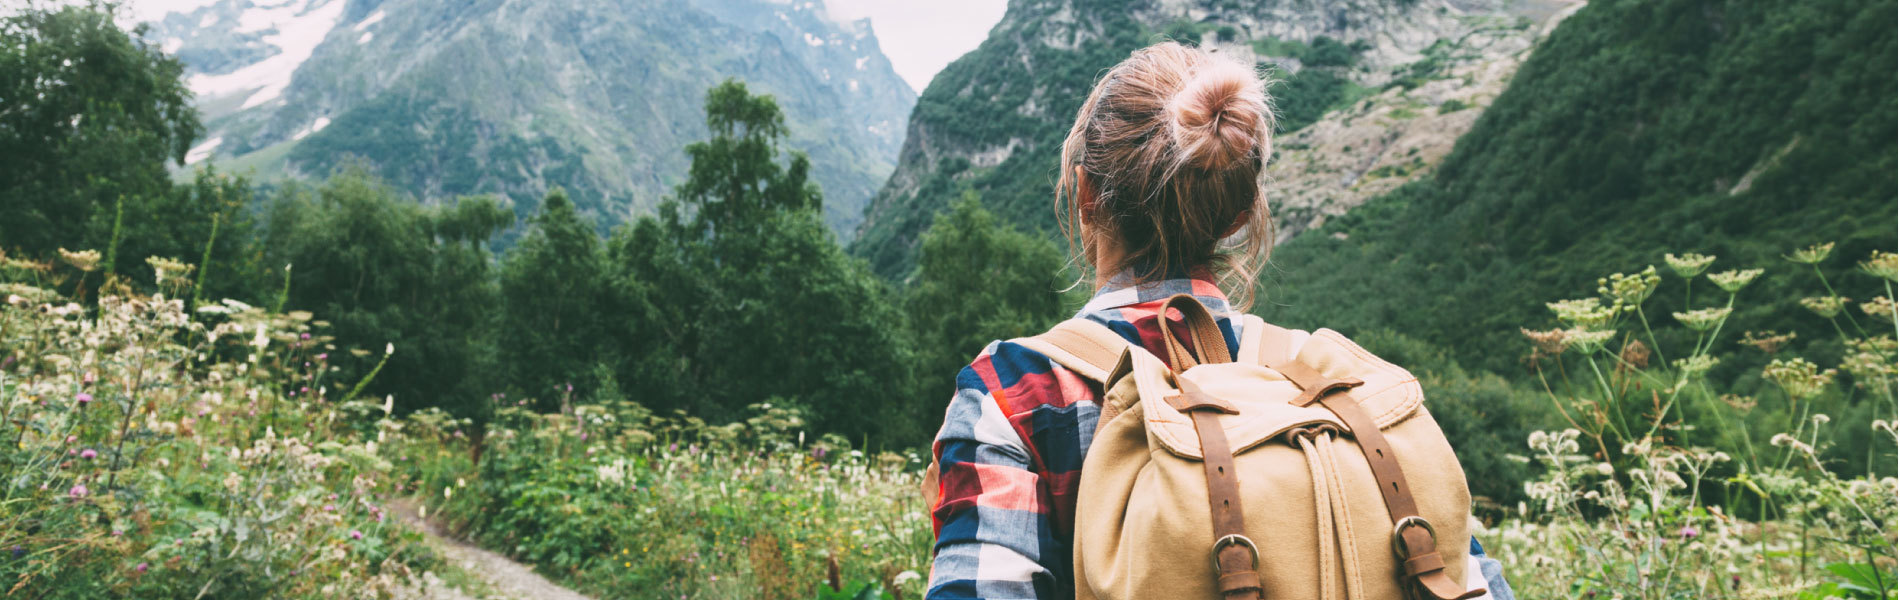 5 Amazing Hikes to Do for your Bucket List